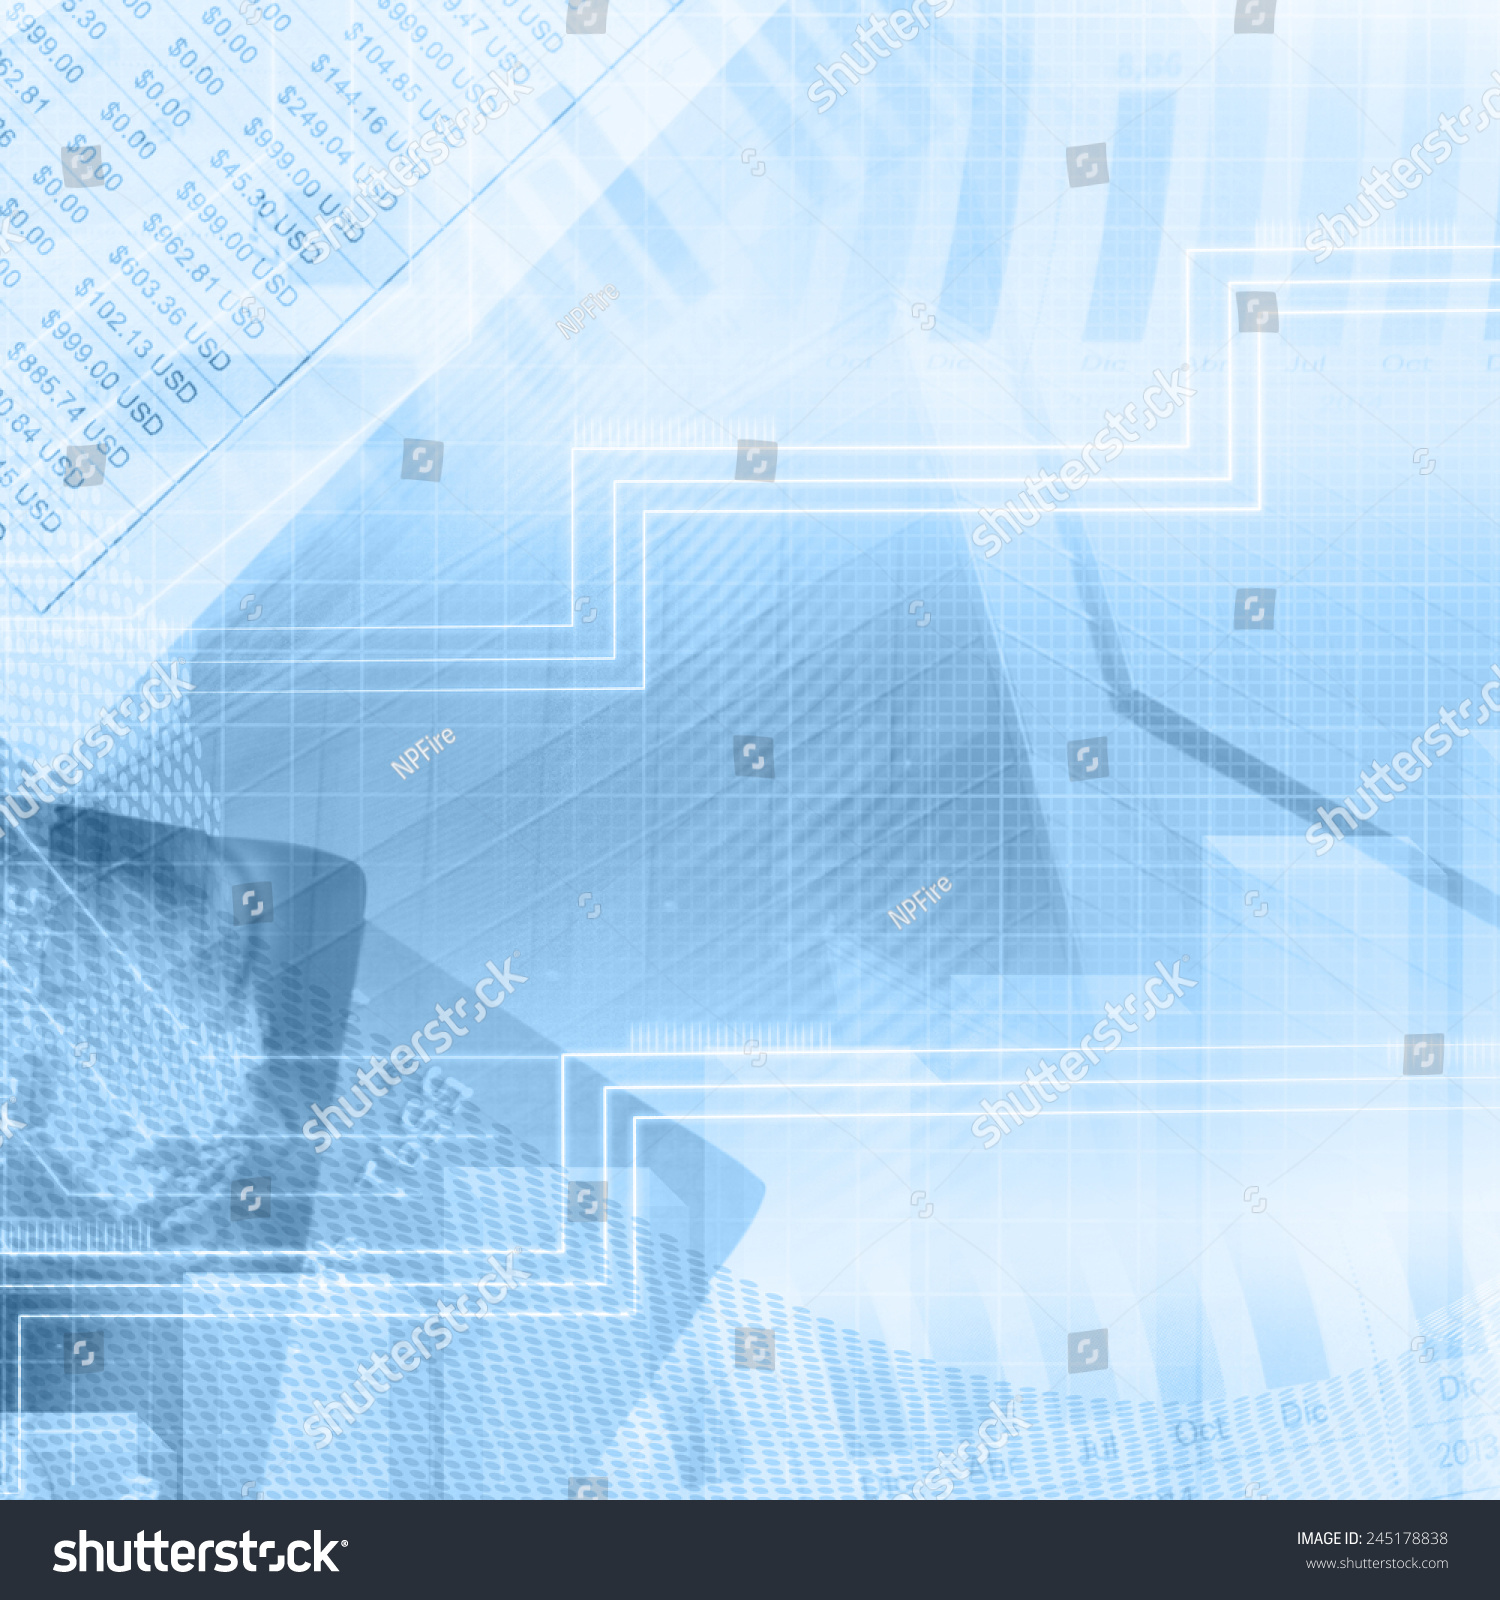 Finance Background: Finance Abstract Background Stock Photo 245178838